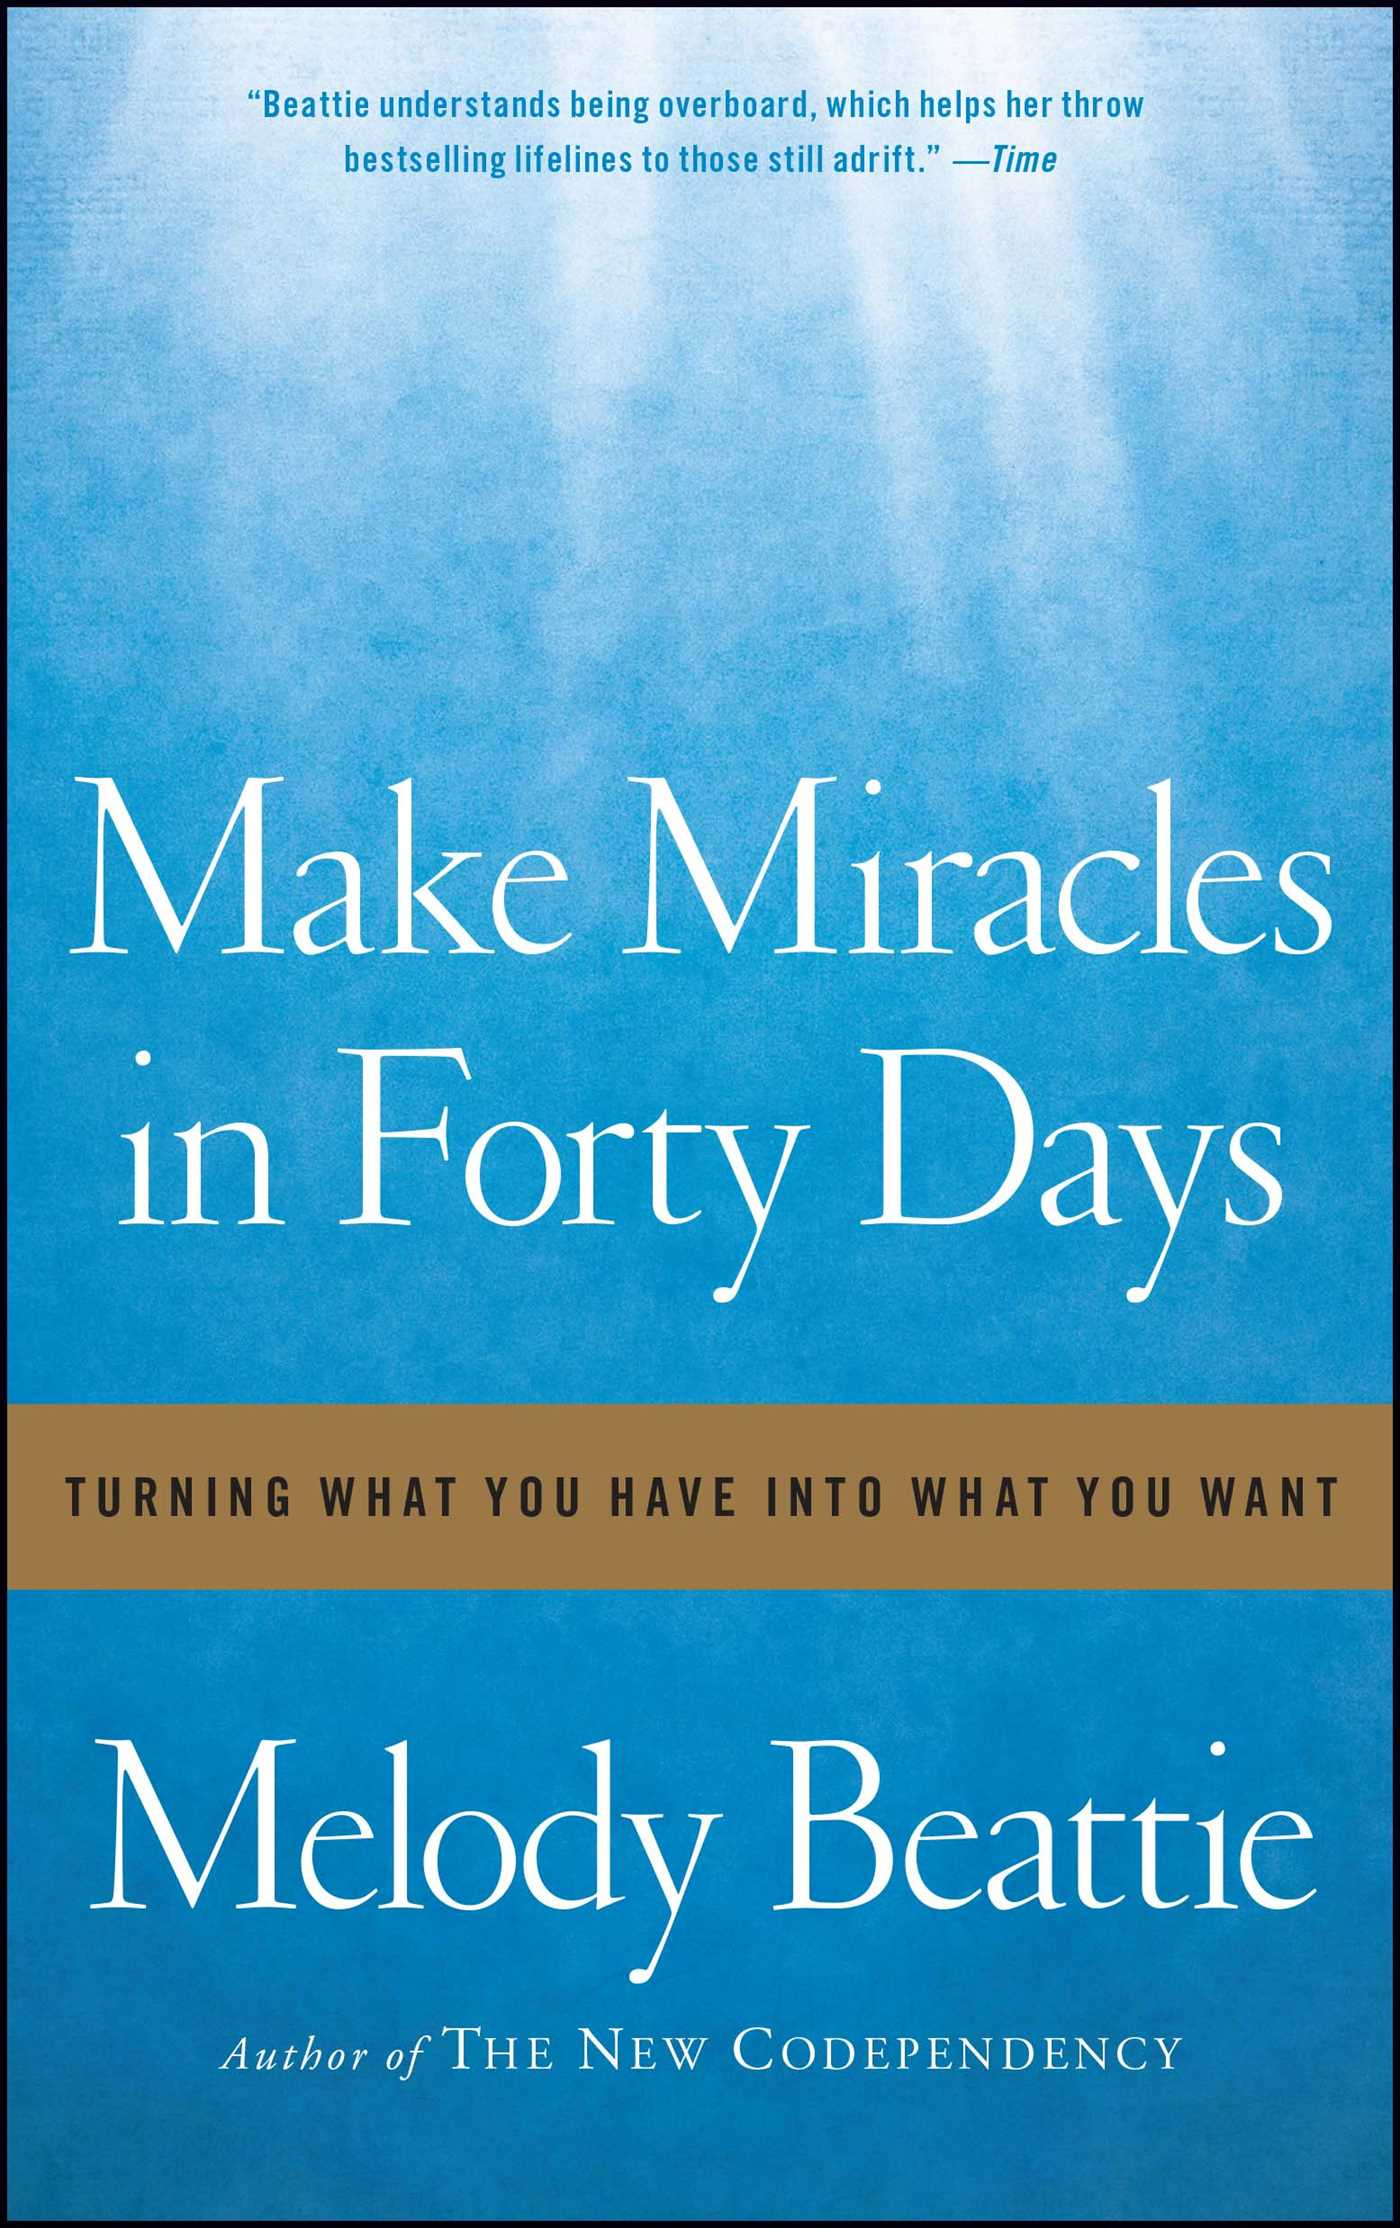 Make miracles in forty days 9781439102169 hr